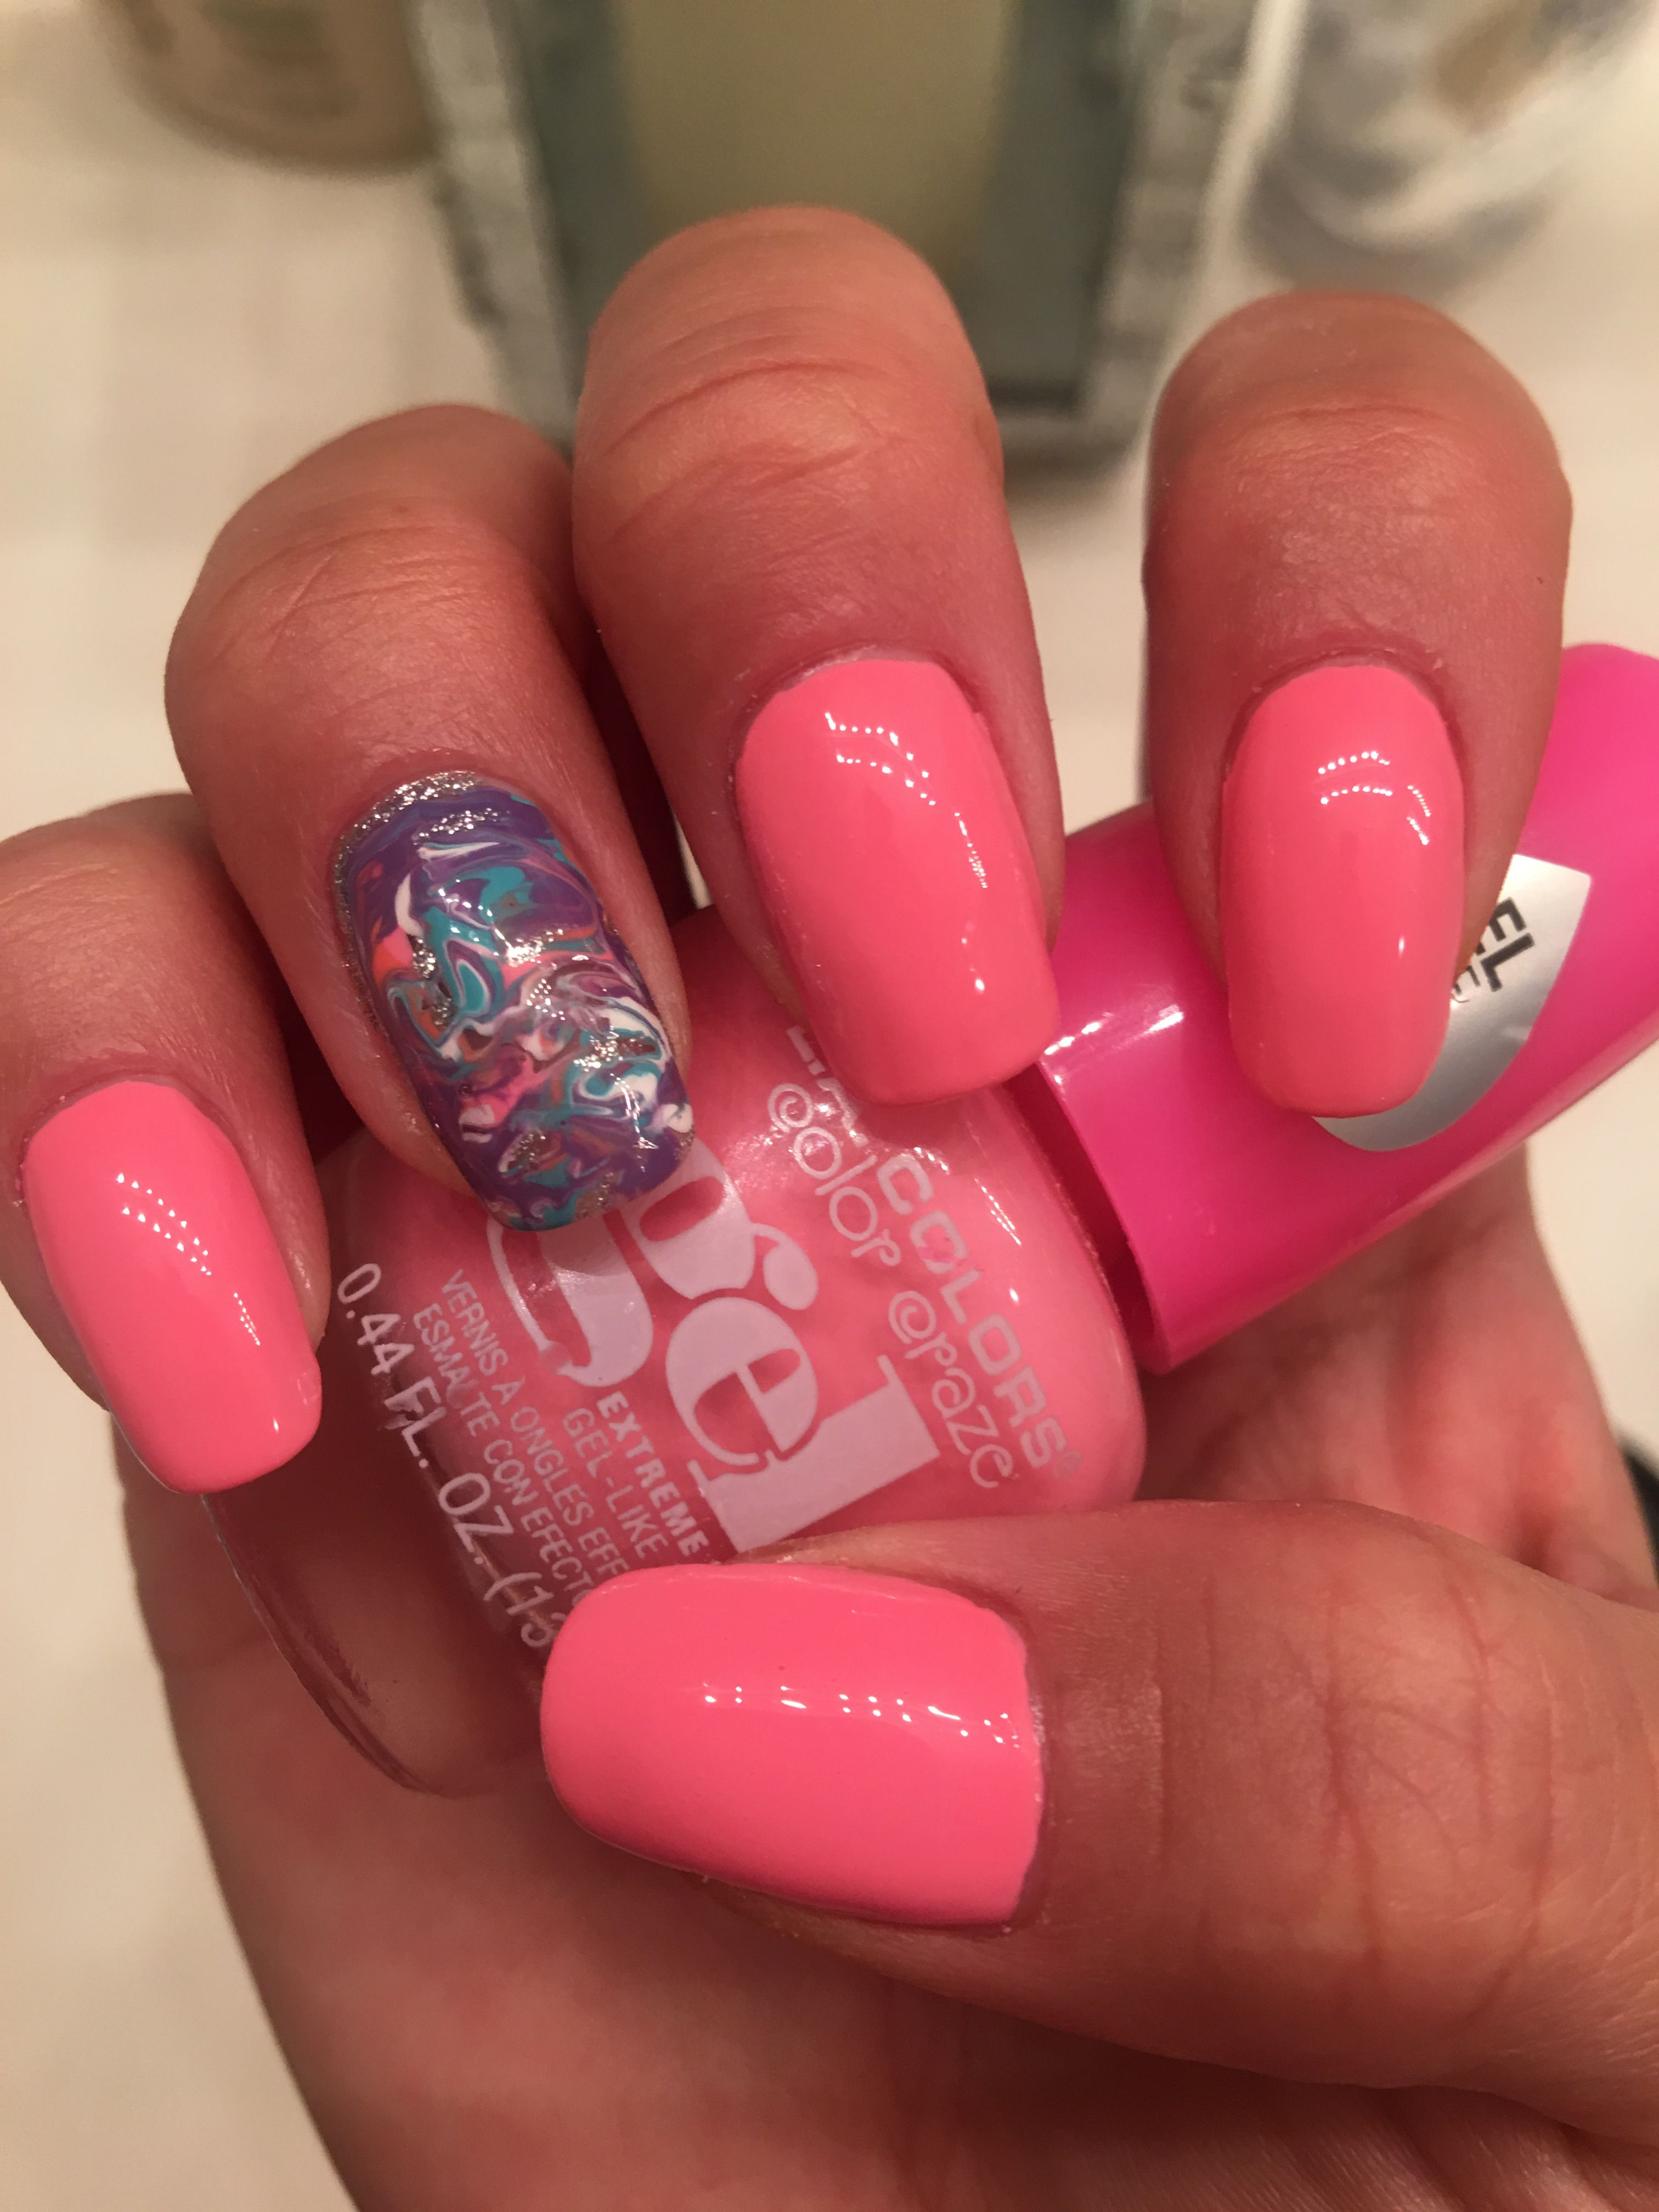 La colors gel polish in the hot pink color posh cute - Cute nail polish designs to do at home ...